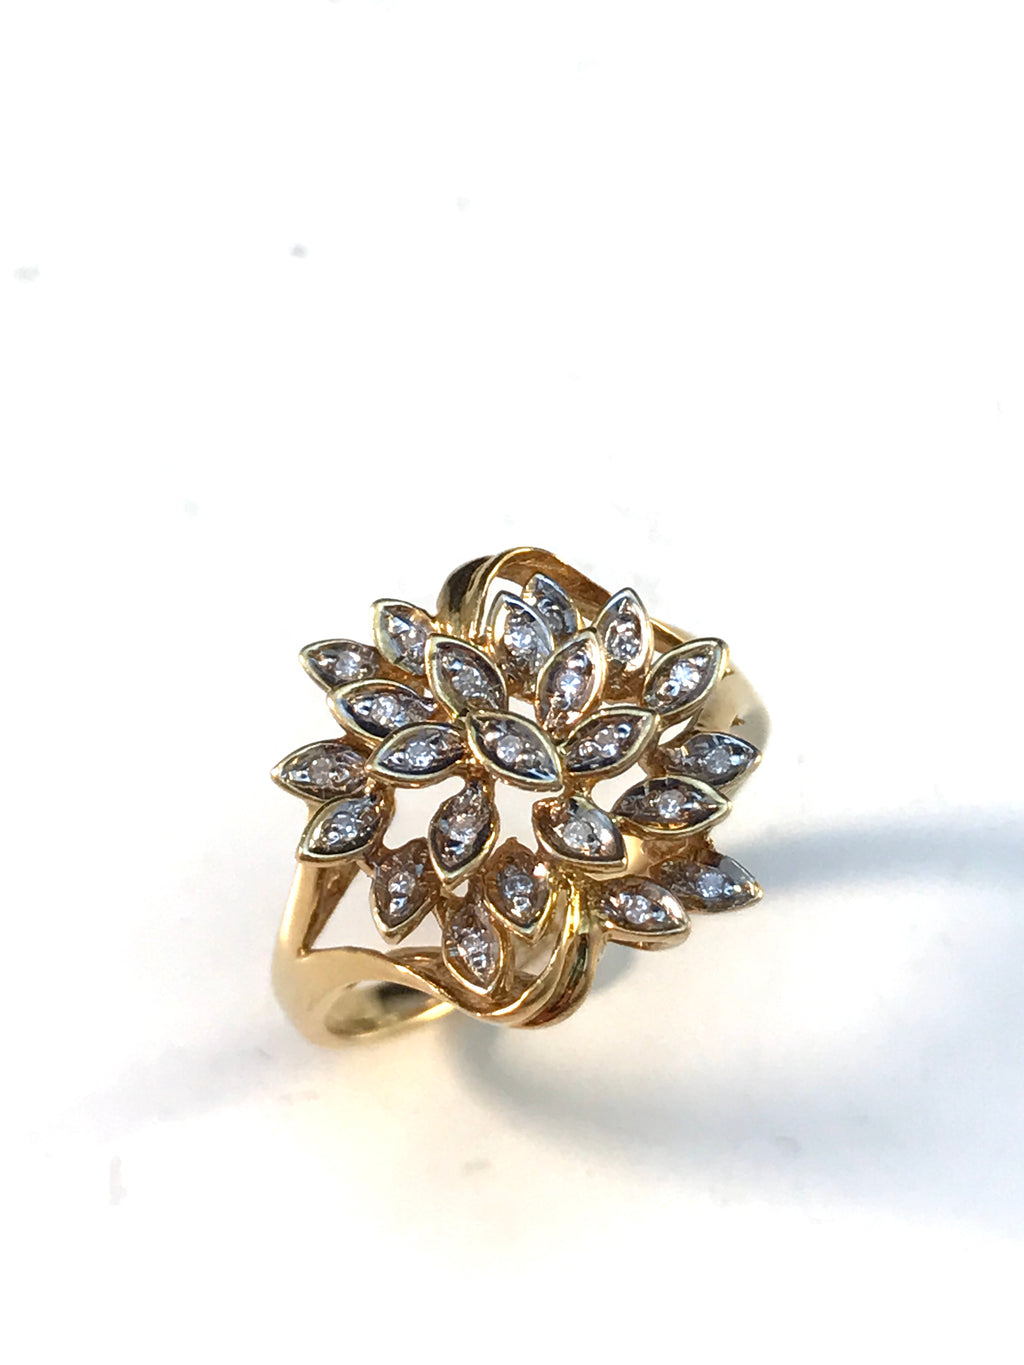 Vintage Mid Century 18k Gold Diamond Ring.